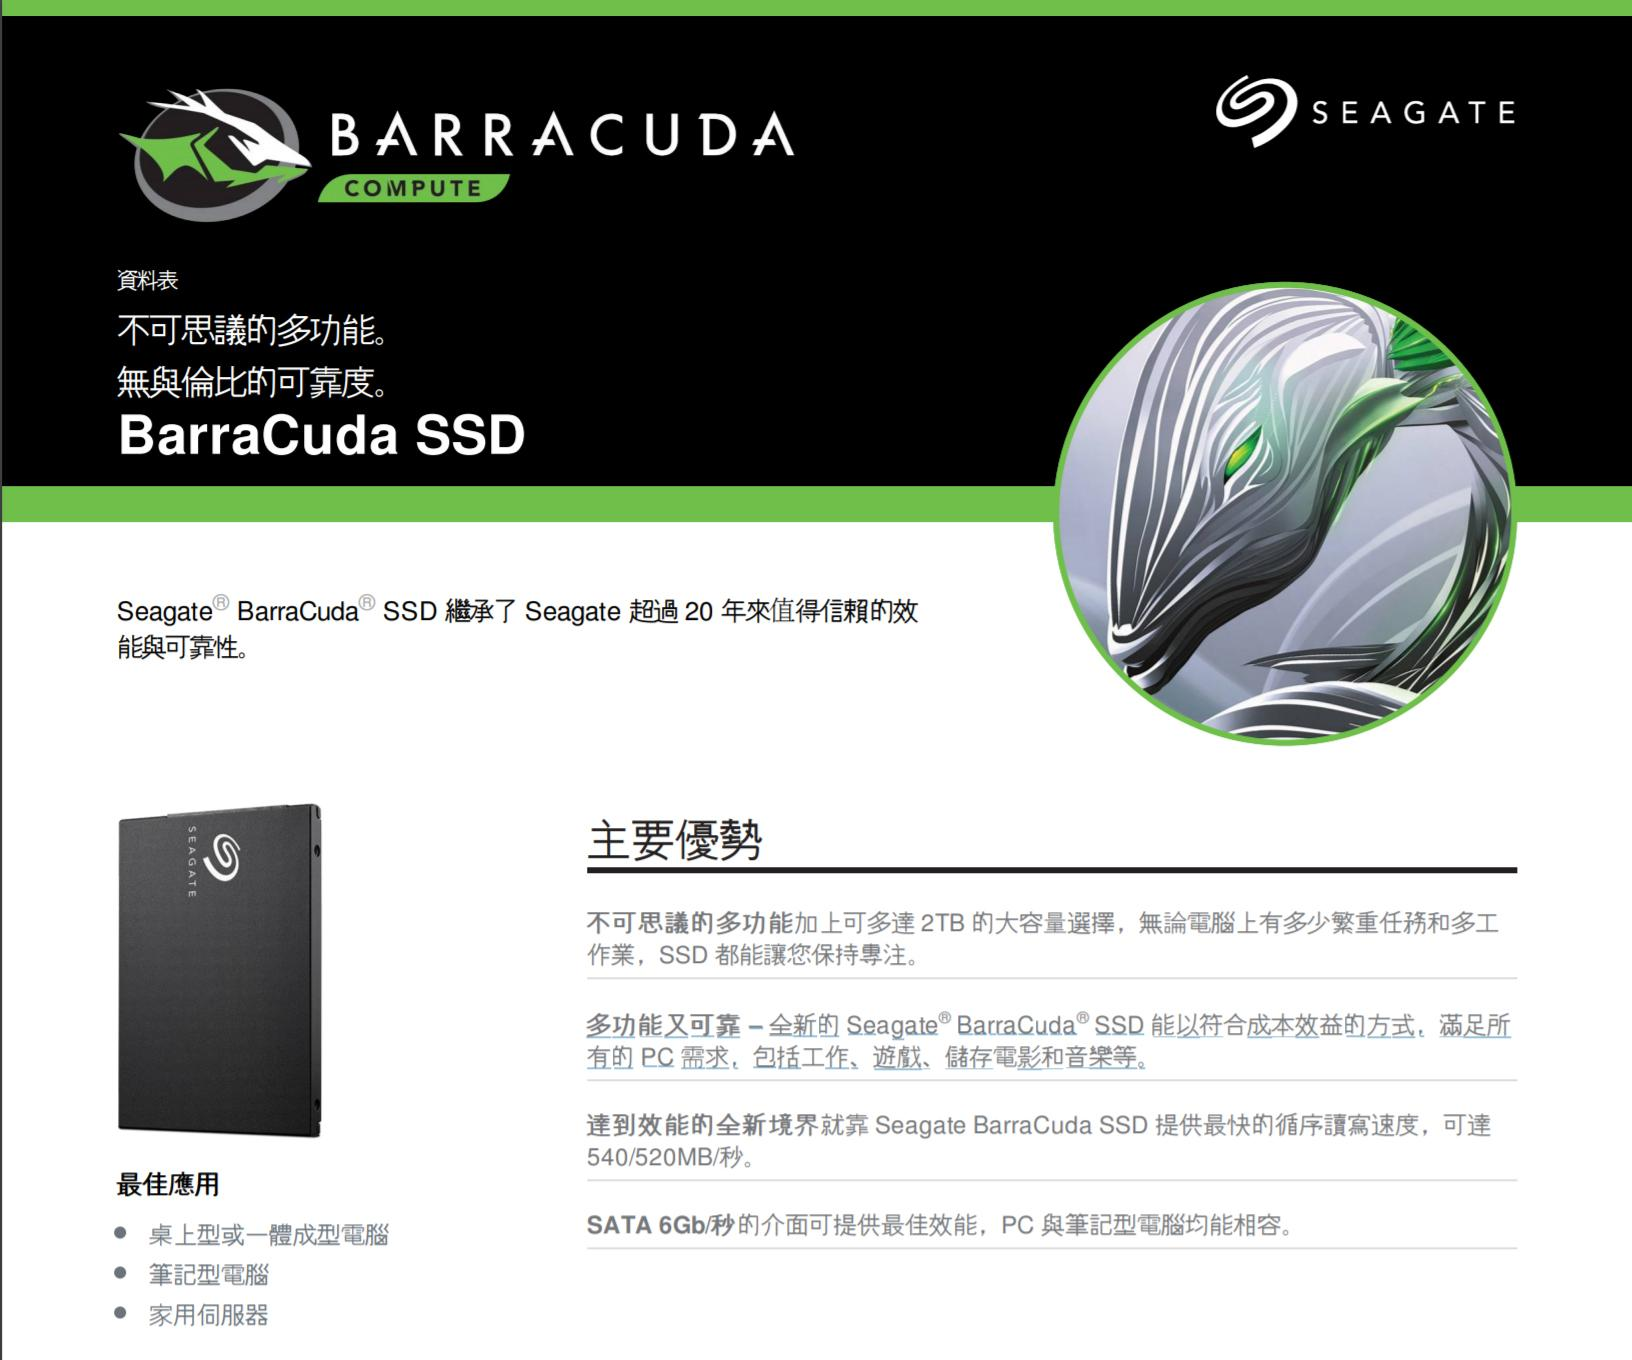 5年保固、最大2TB容量:SEAGATE發布BarraCuda SSD - XFastest - Seagate-BarraCuda-SSD.jpg